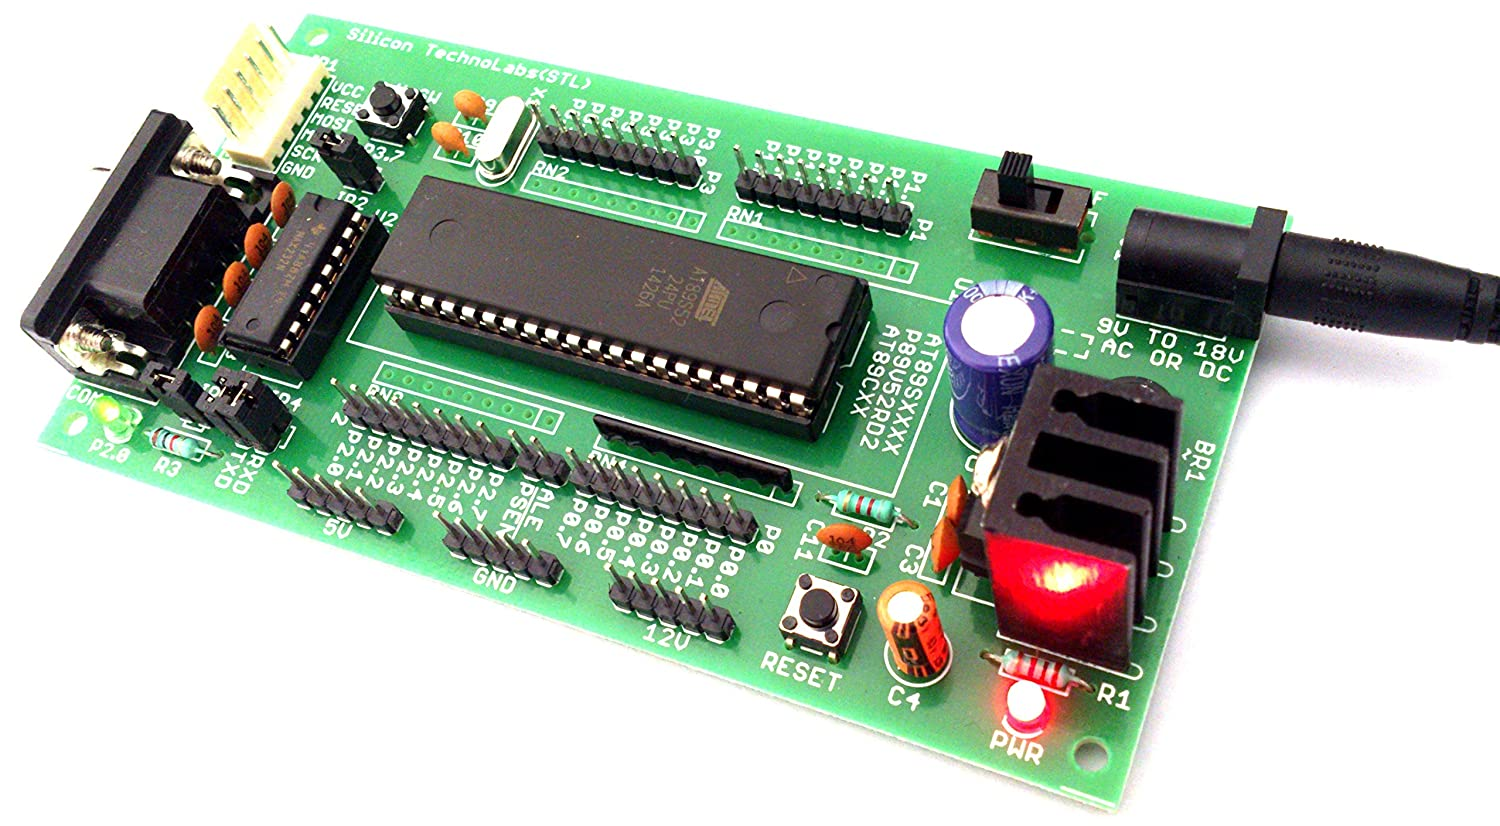 Buy Silicon Technolabs Development Board Green Online Interfacing Gps To 8051 Microcontroller Circuit Diagram At Low Prices In India Reviews Ratings